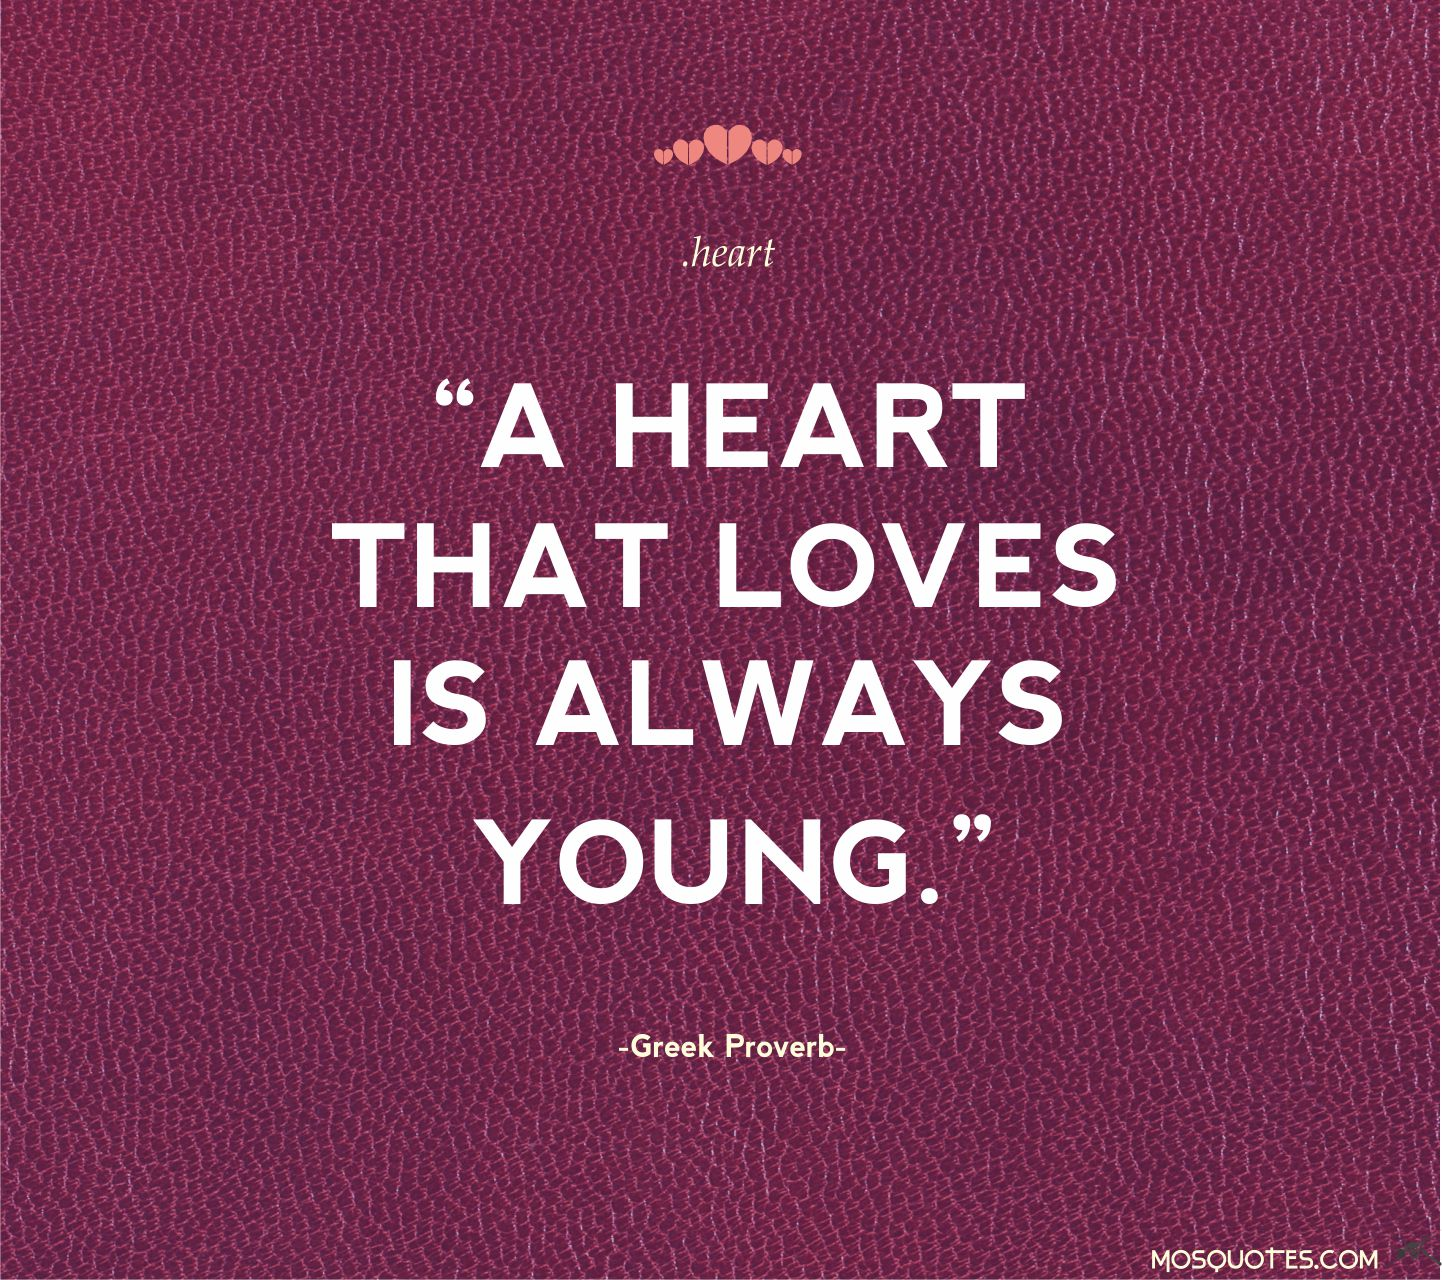 Quotes About Young Love: Young Love Quotes For Her. QuotesGram